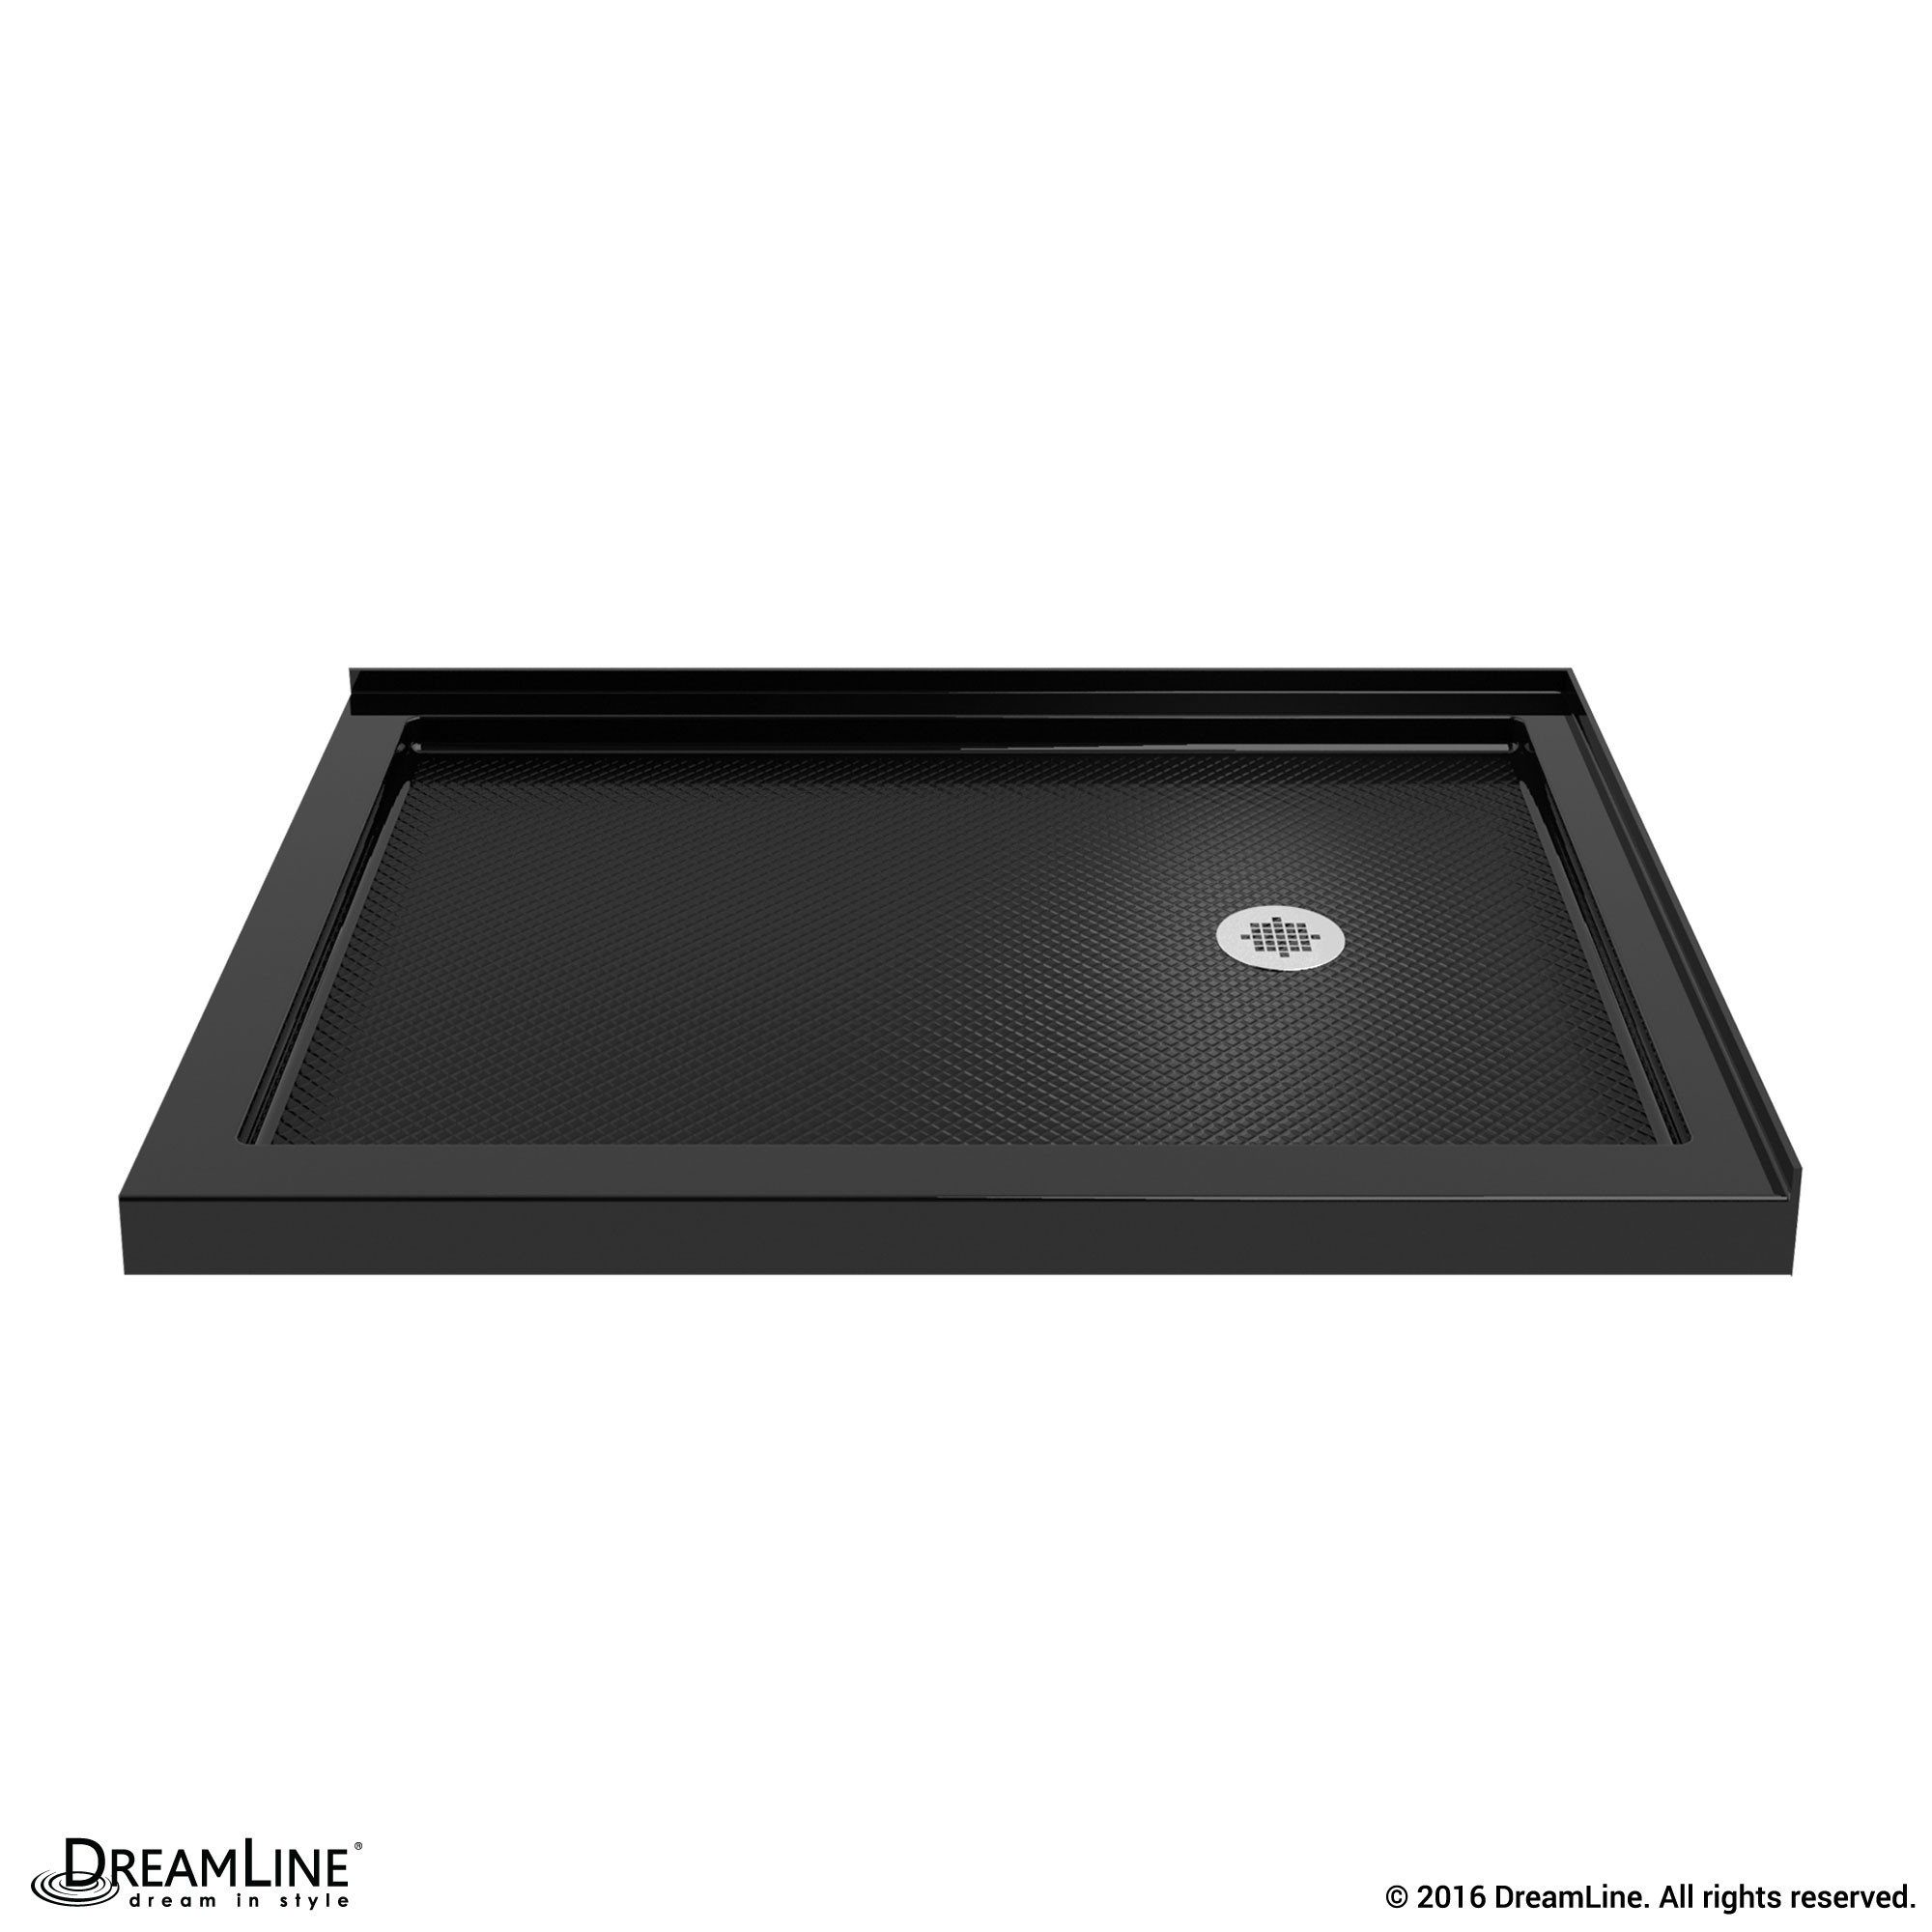 DreamLine DLT-1036602-88 SlimLine 36 Inch by 60 Inch Double Threshold Shower Base In Black Color Right Hand Drain